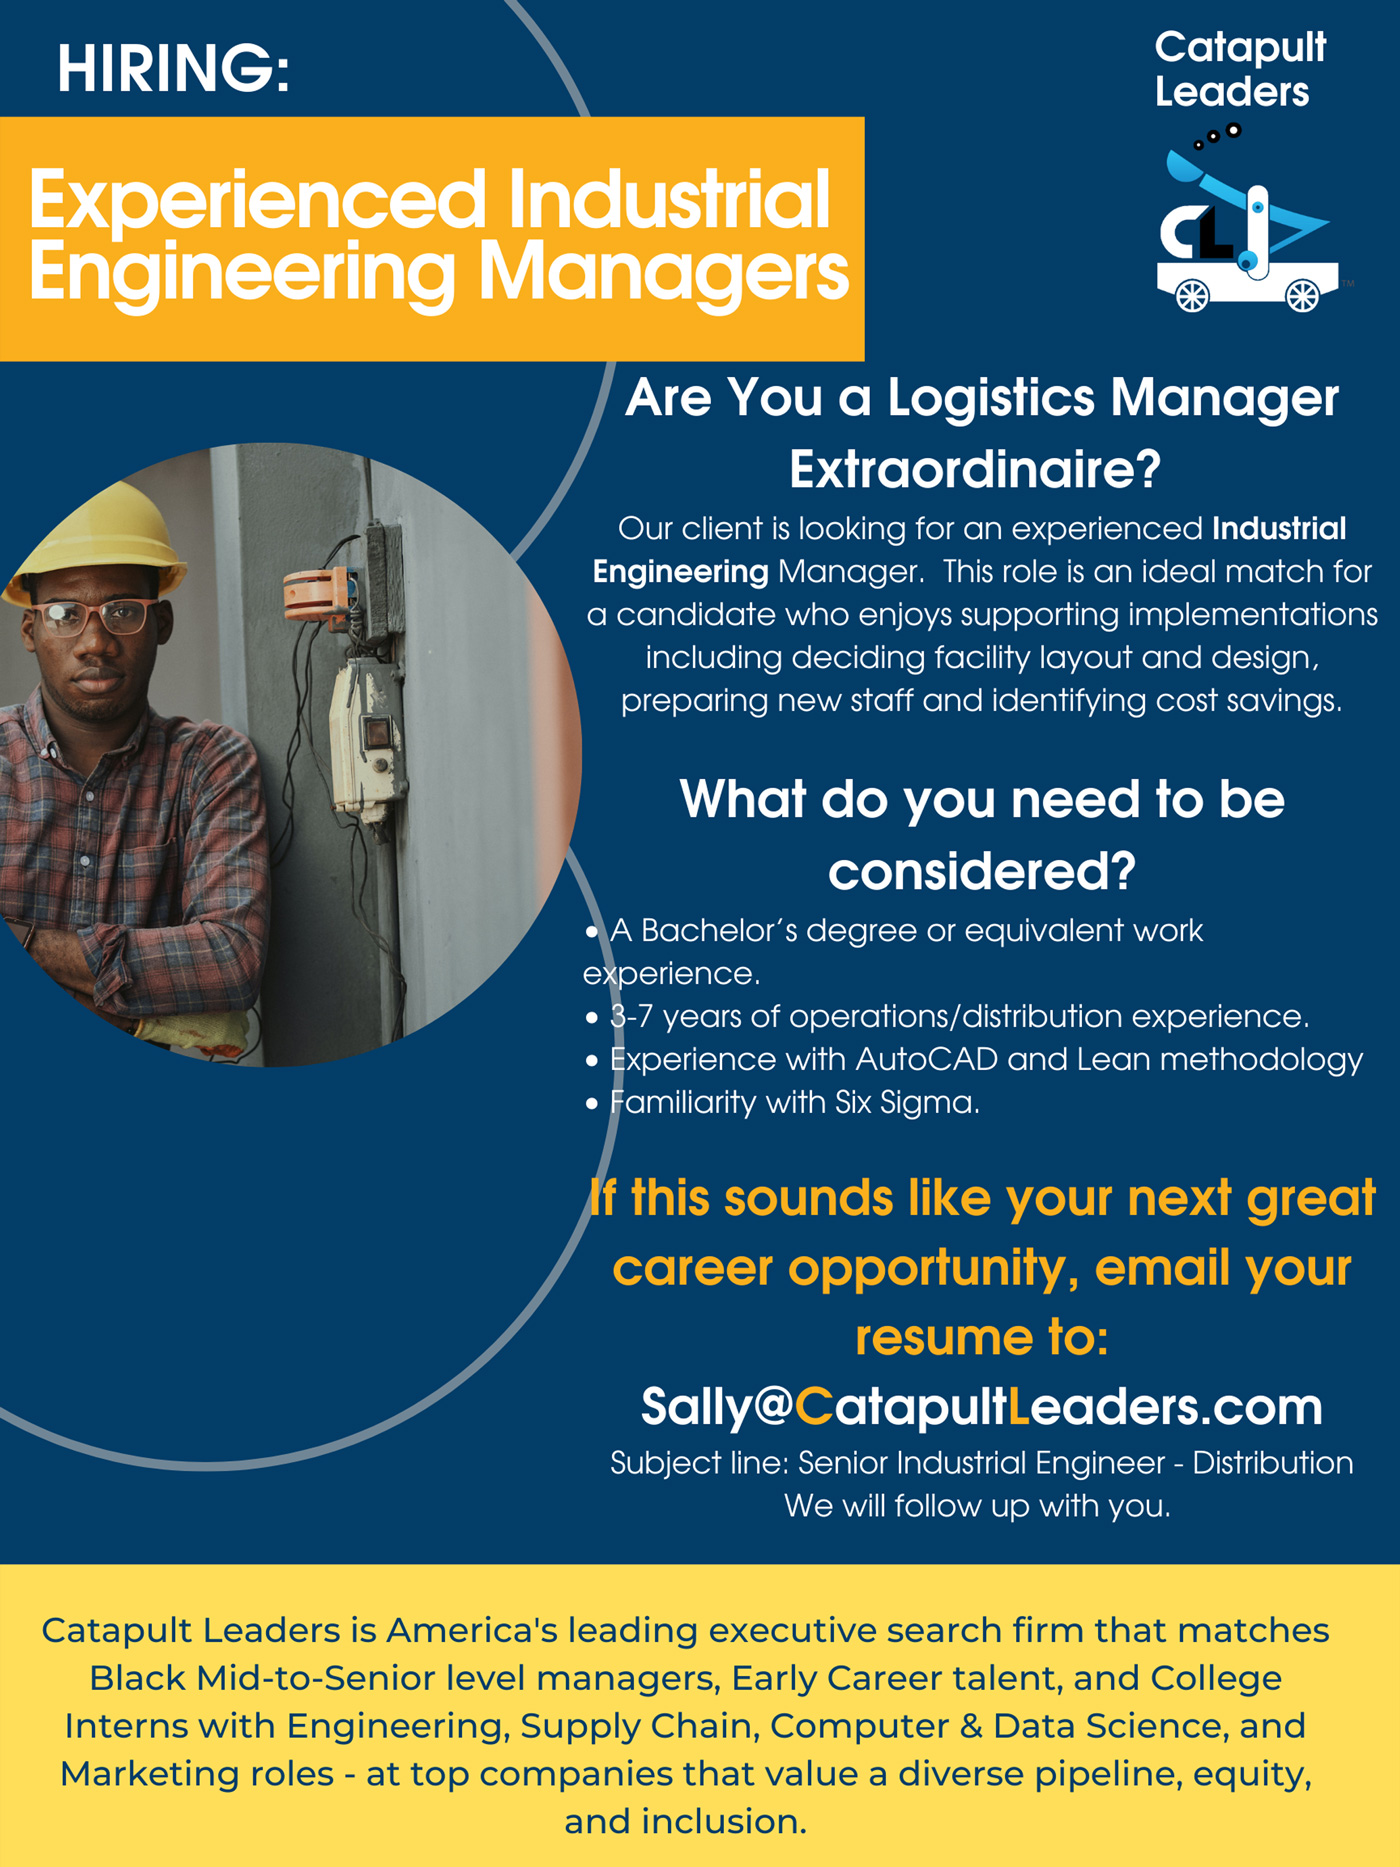 industrial engineering manager - catapult leaders